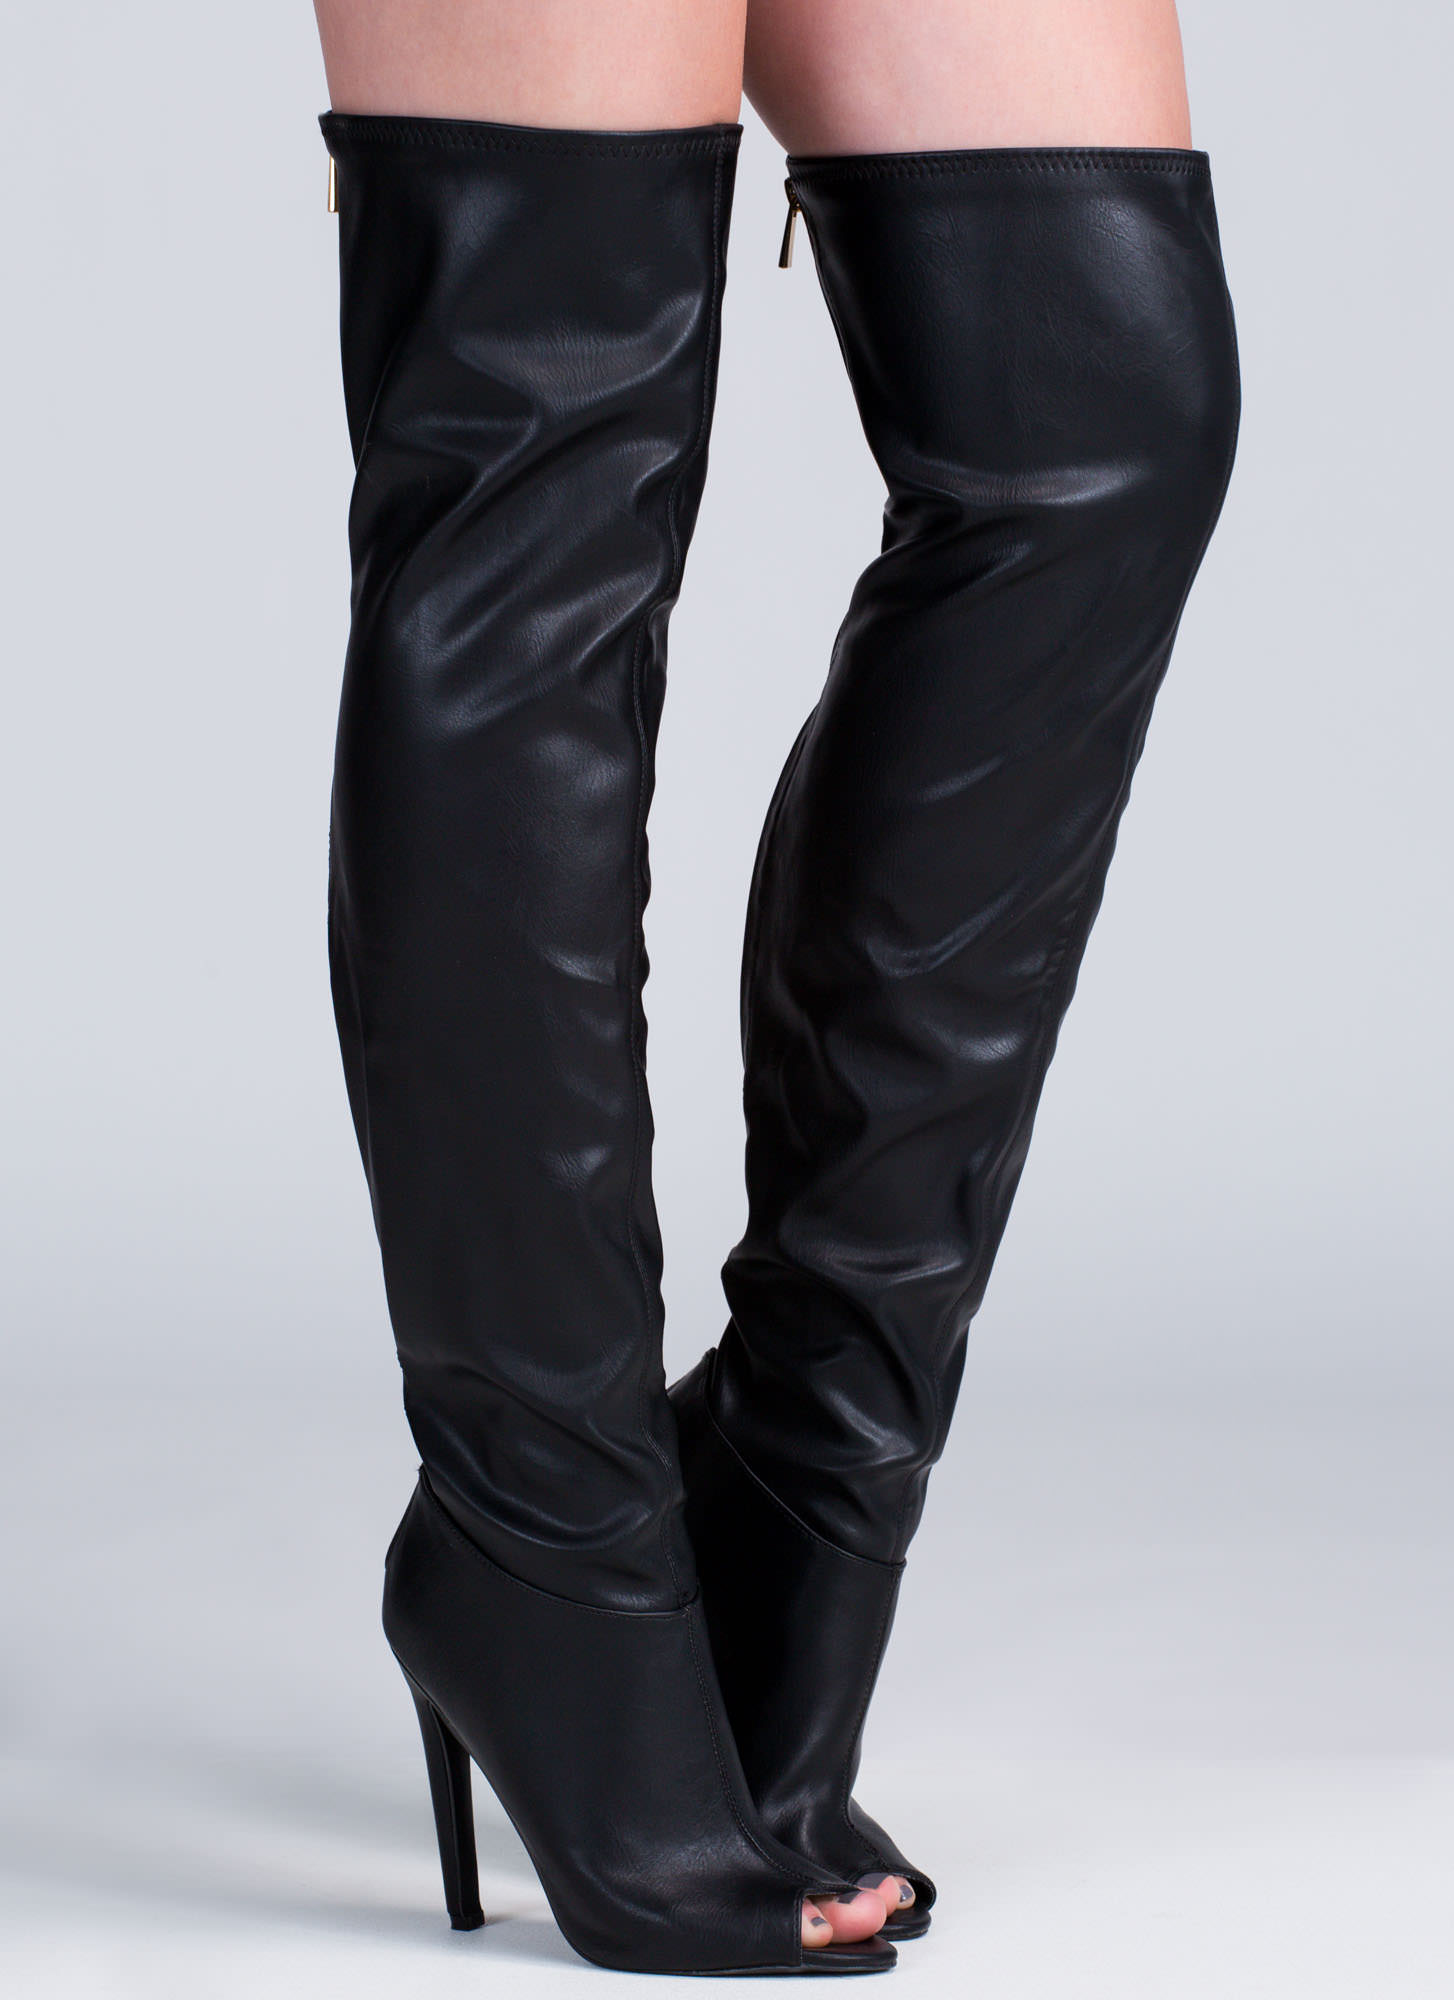 Leather Peep Toe Thigh High Boots - Boot Hto